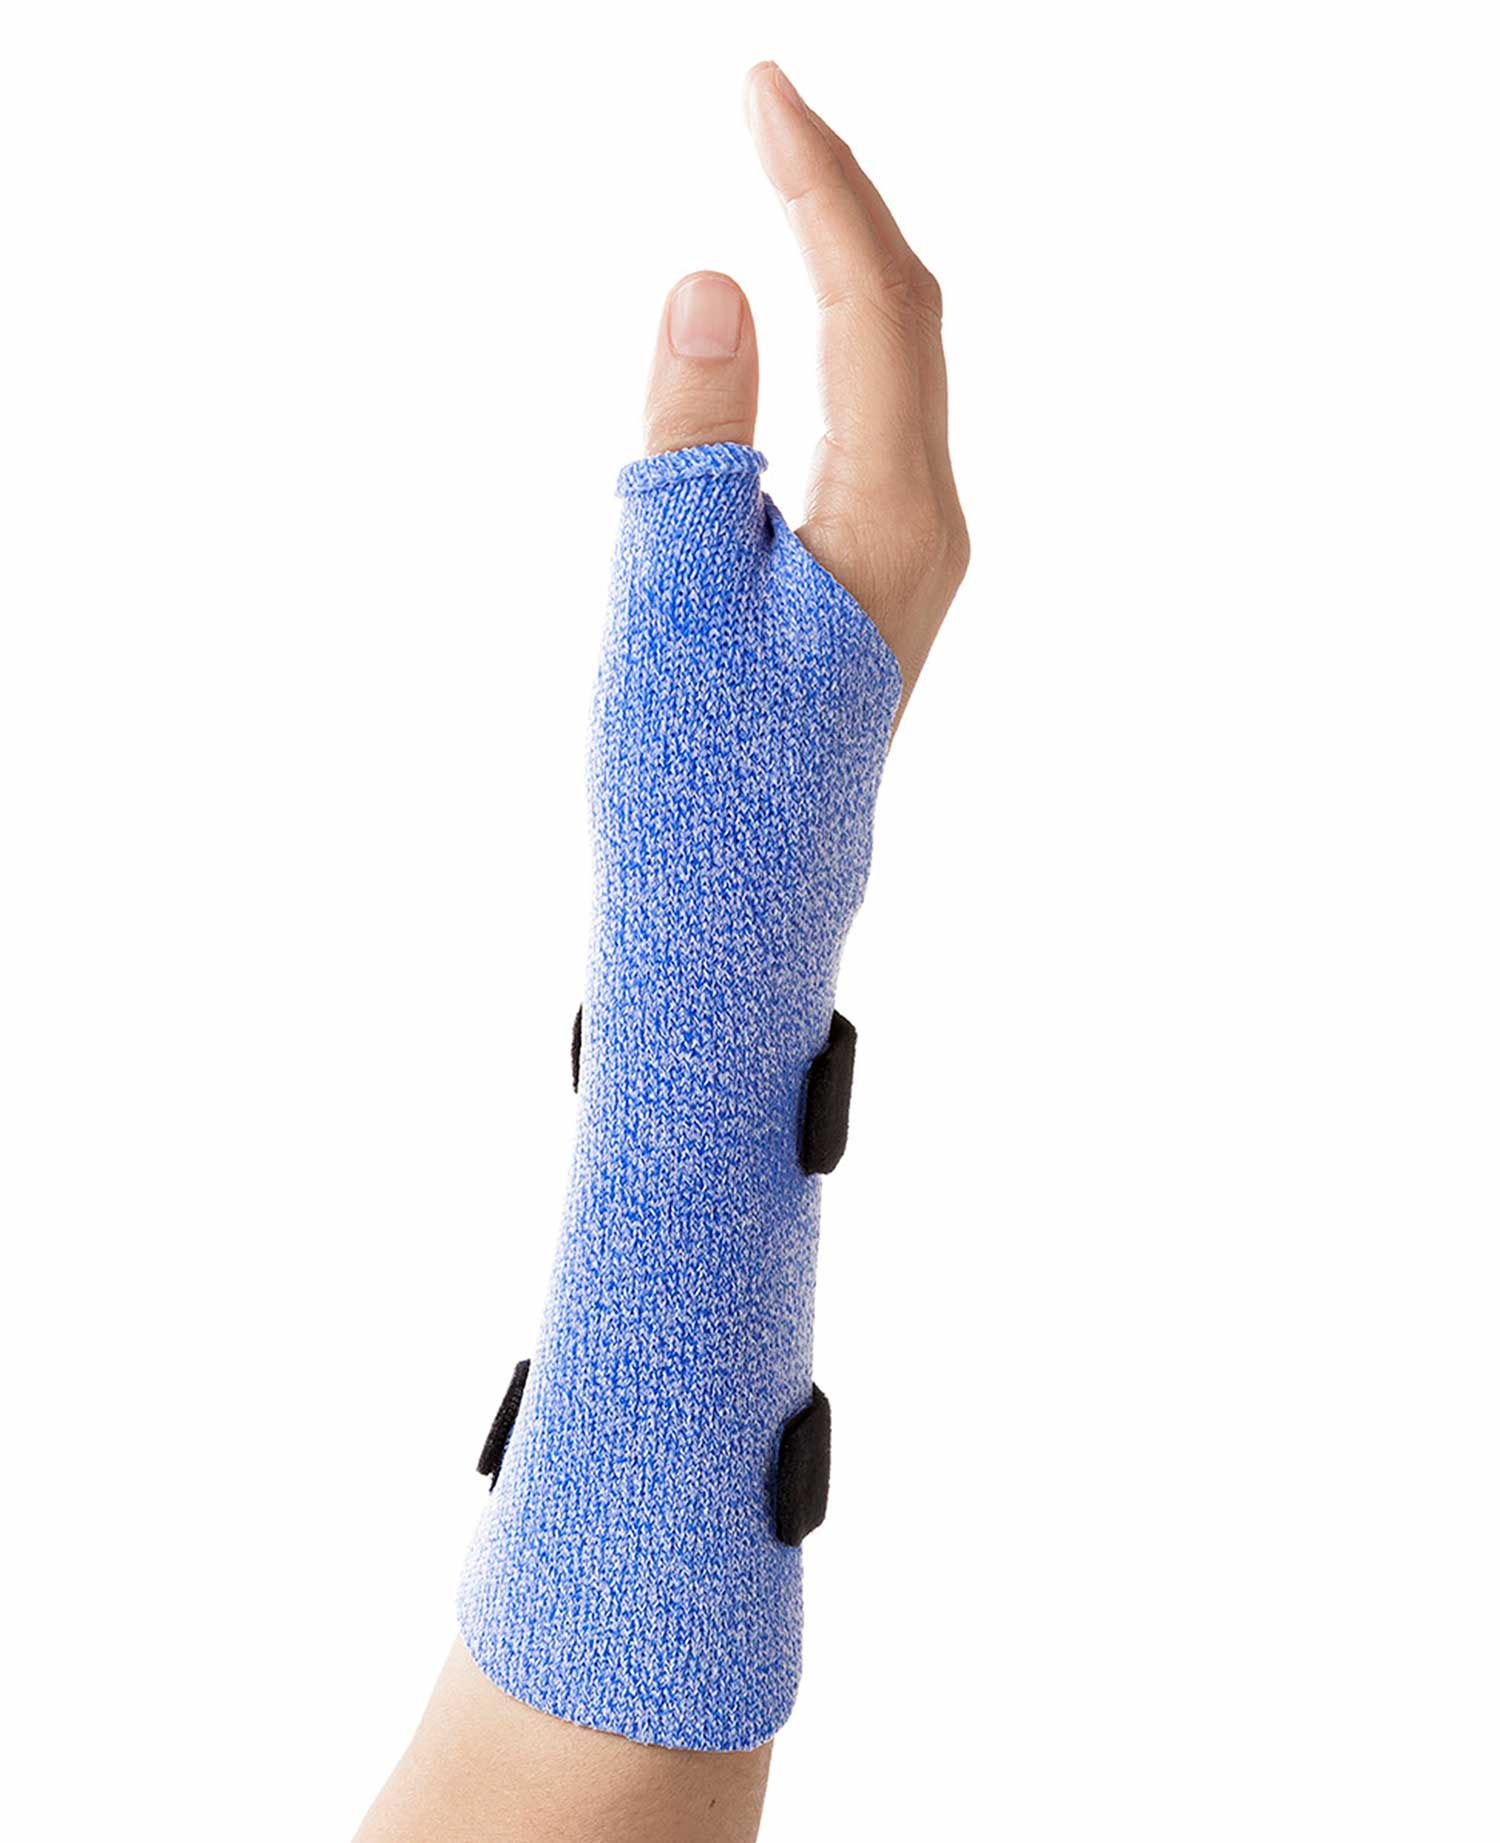 Long opponens orthosis in Orficast